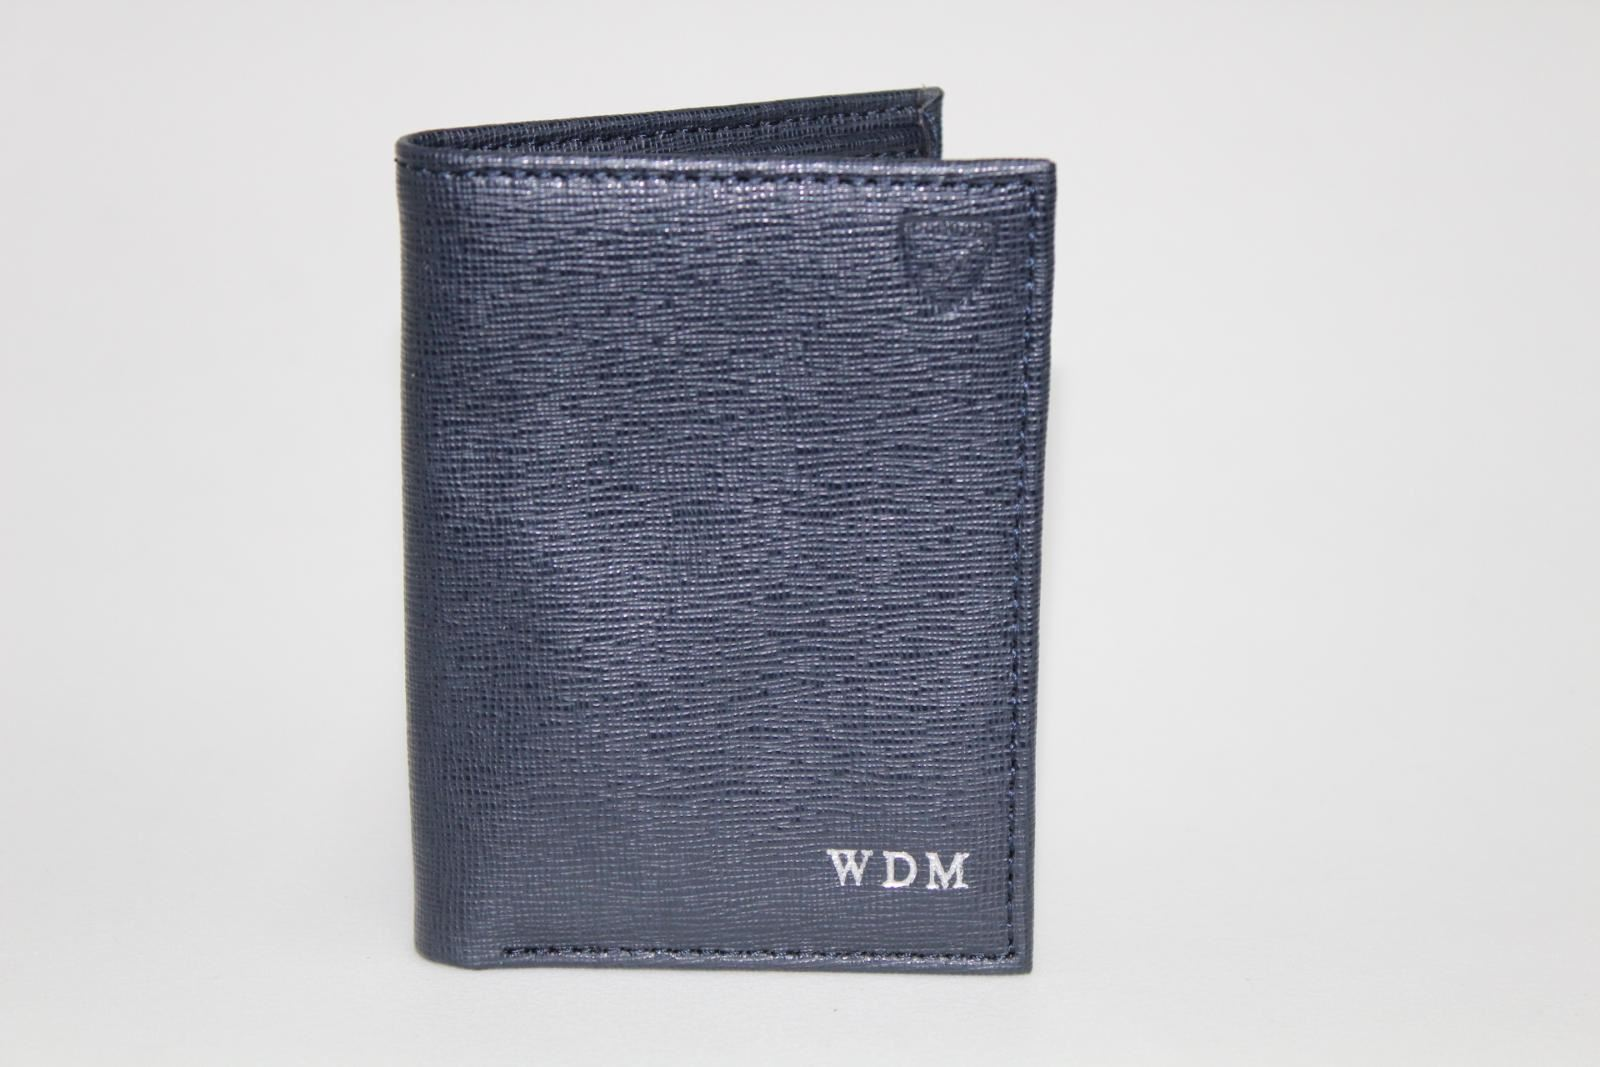 ASPINAL-OF-LONDON-Mens-Blue-Saffiano-Leather-Slot-Note-WDM-Initials-Wallet-NEW